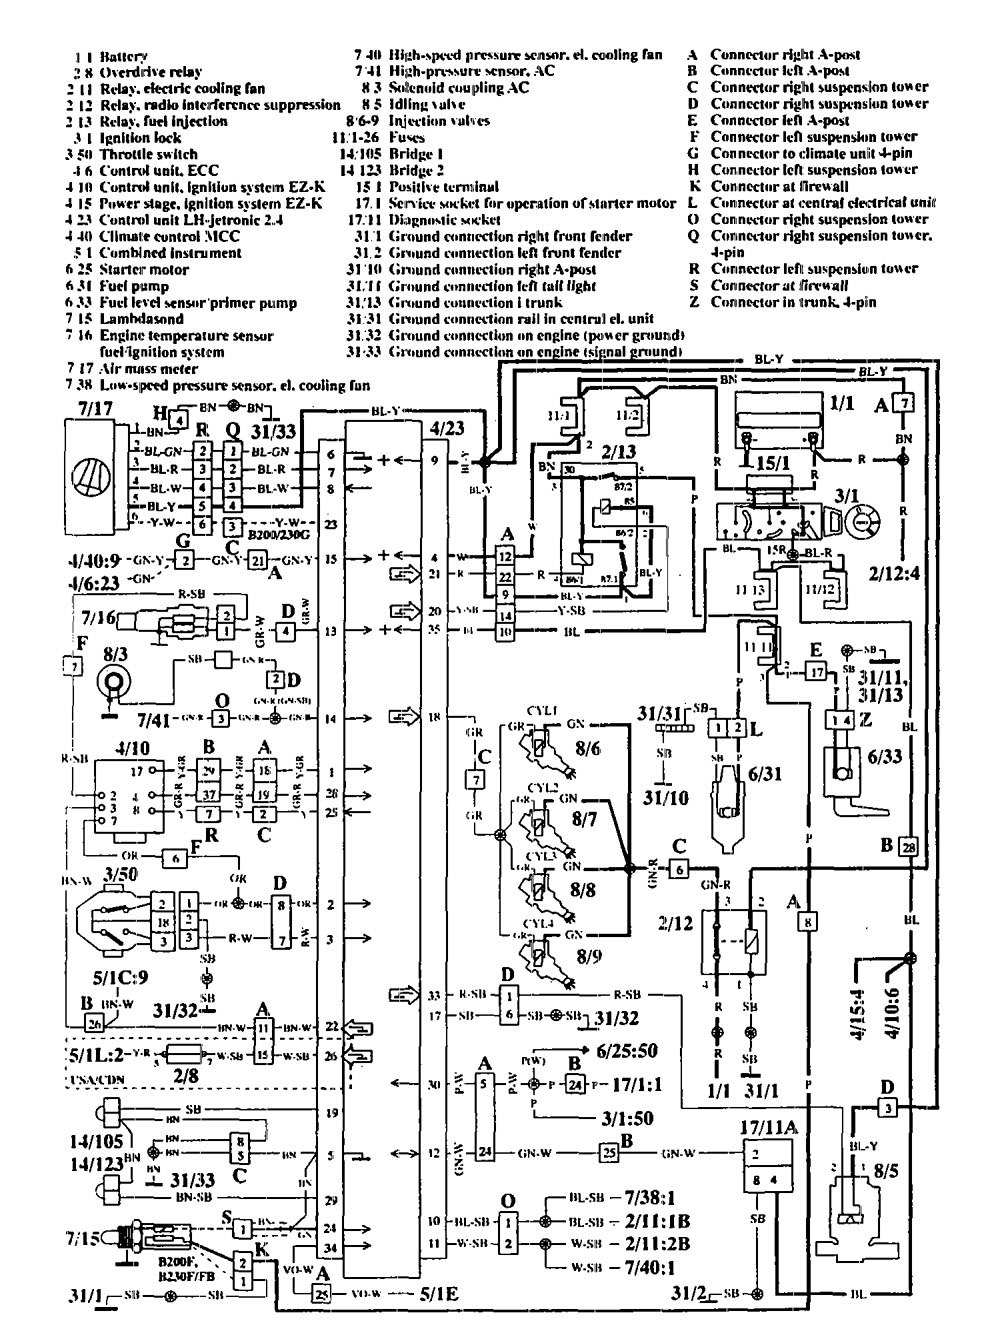 Wiring Diagram Skoda Fabia Ii Will Be A Thing Superb Fuse Box Roomster 29 Images 2005 2017